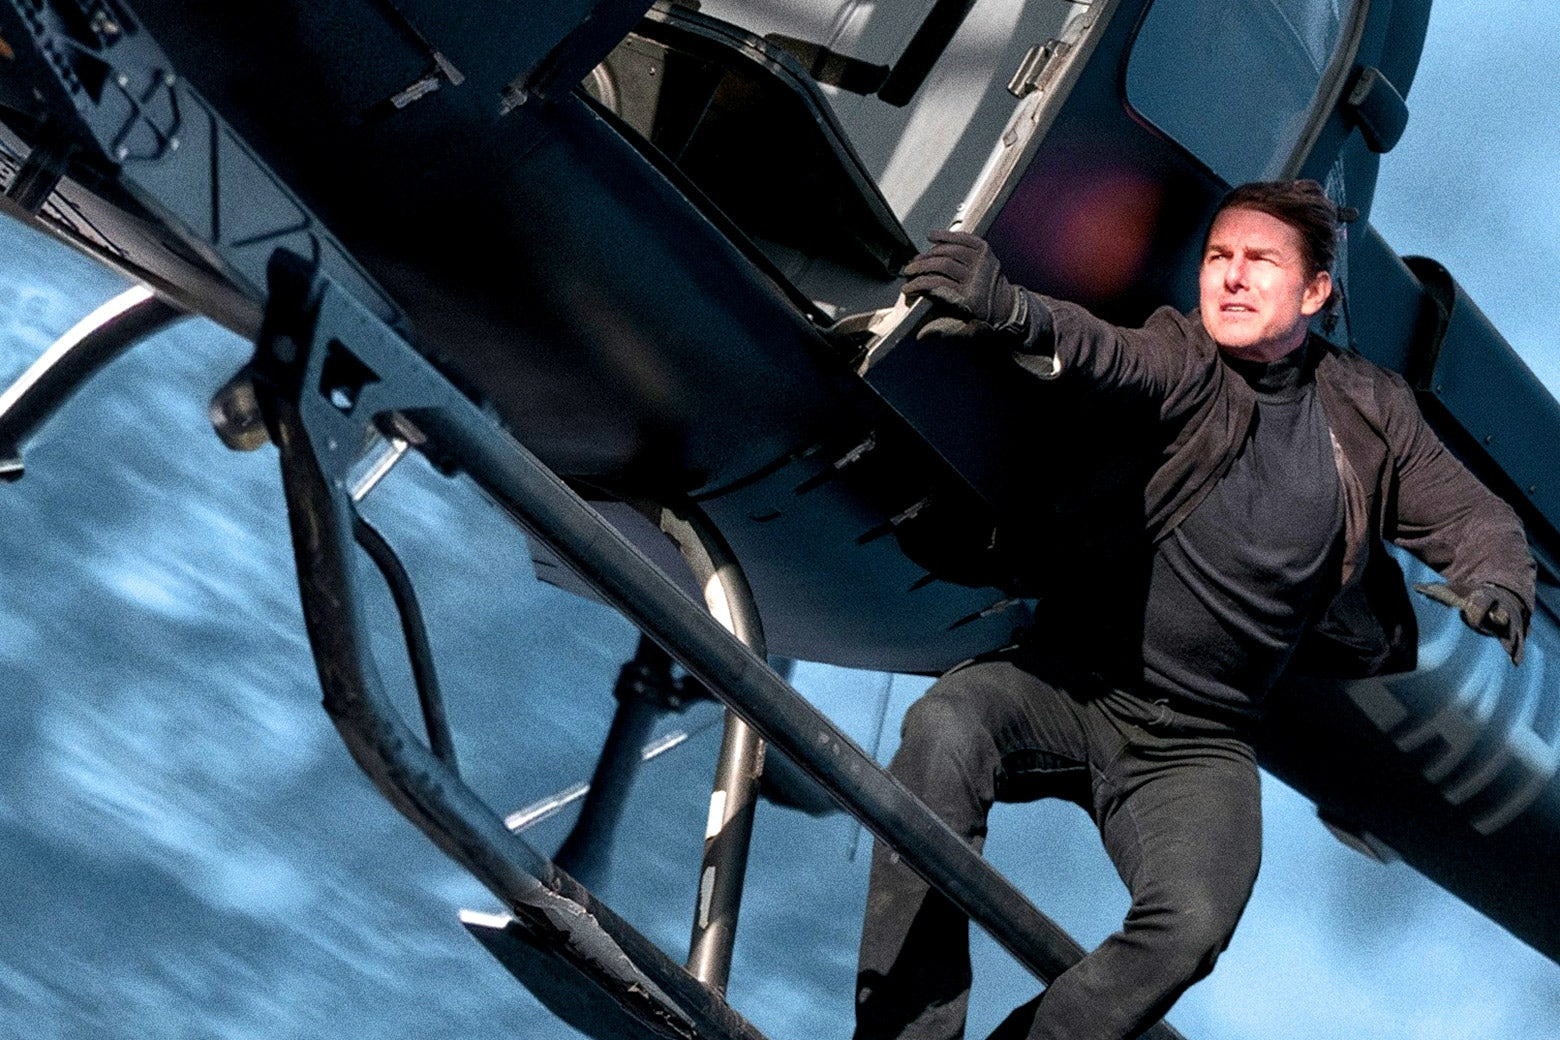 Tom Cruise attempting to hold fast to the outside of a helicopter in Mission: Impossible - Fallout.